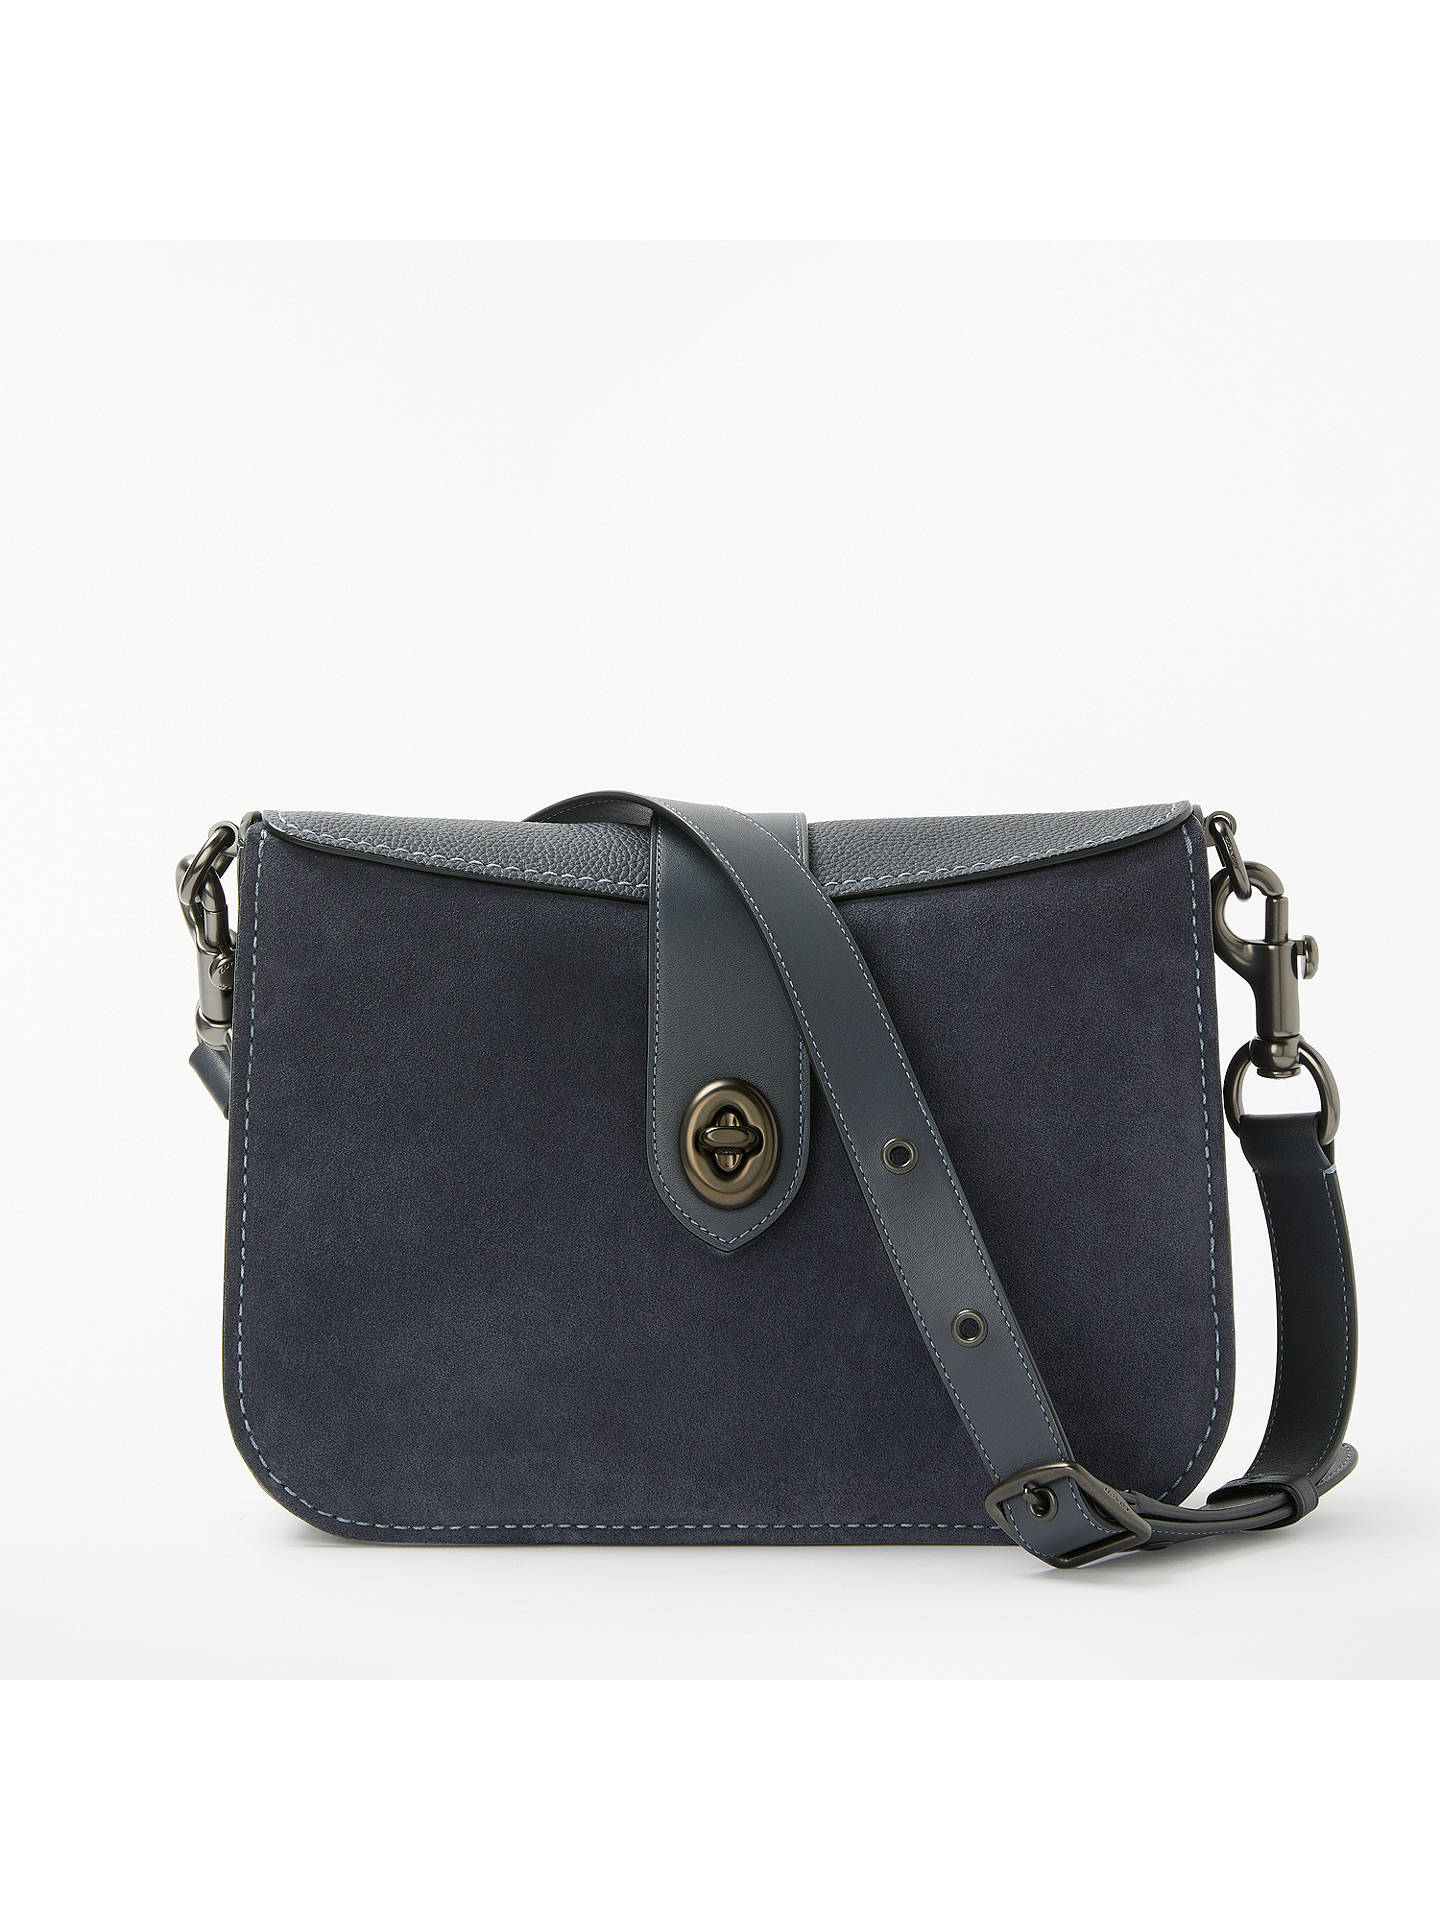 9fc1c76a3e ... sale buycoach page 27 leather shoulder bag midnight navy online at  johnlewis 8a92f 2f67b